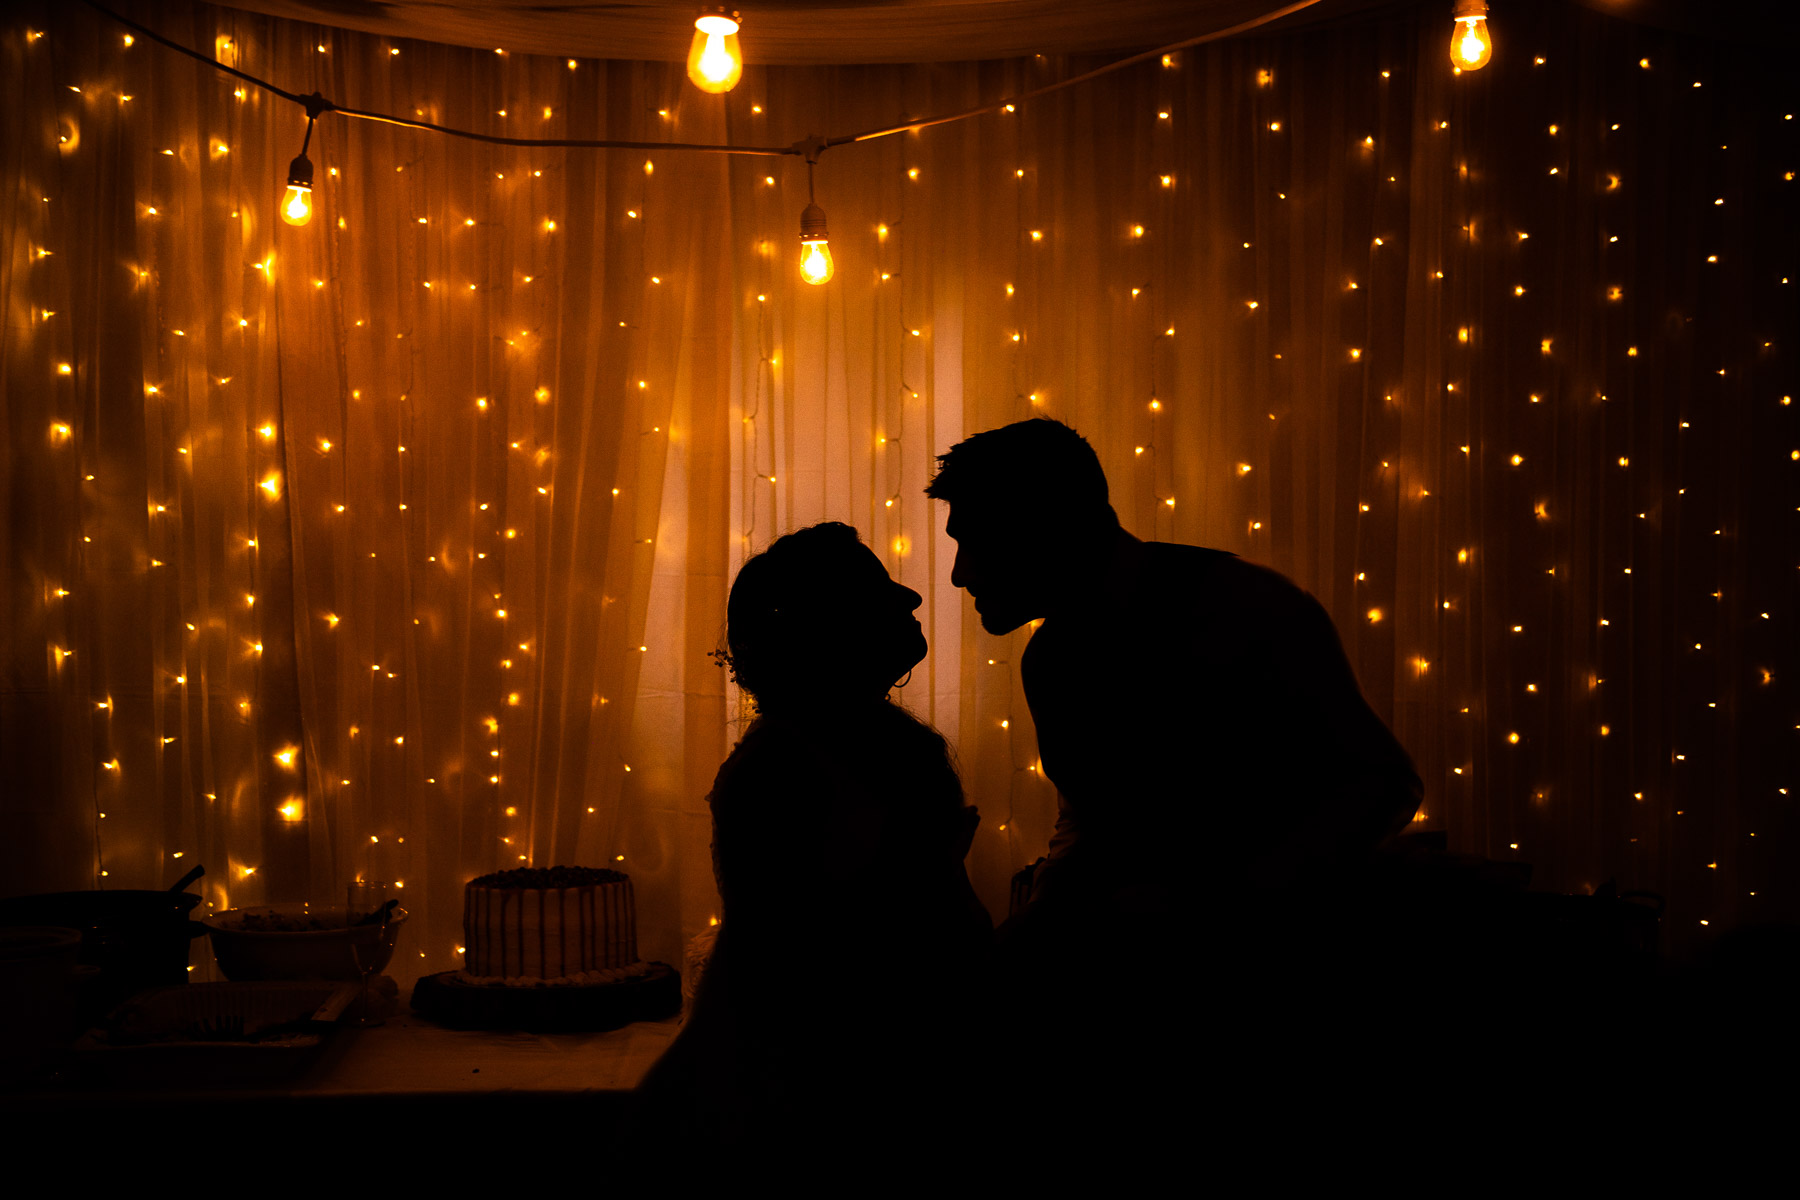 DIY CO Garage Elopement Reception Couple Portrait   The couple cuts the cake surrounded by lights in their DIY reception garage